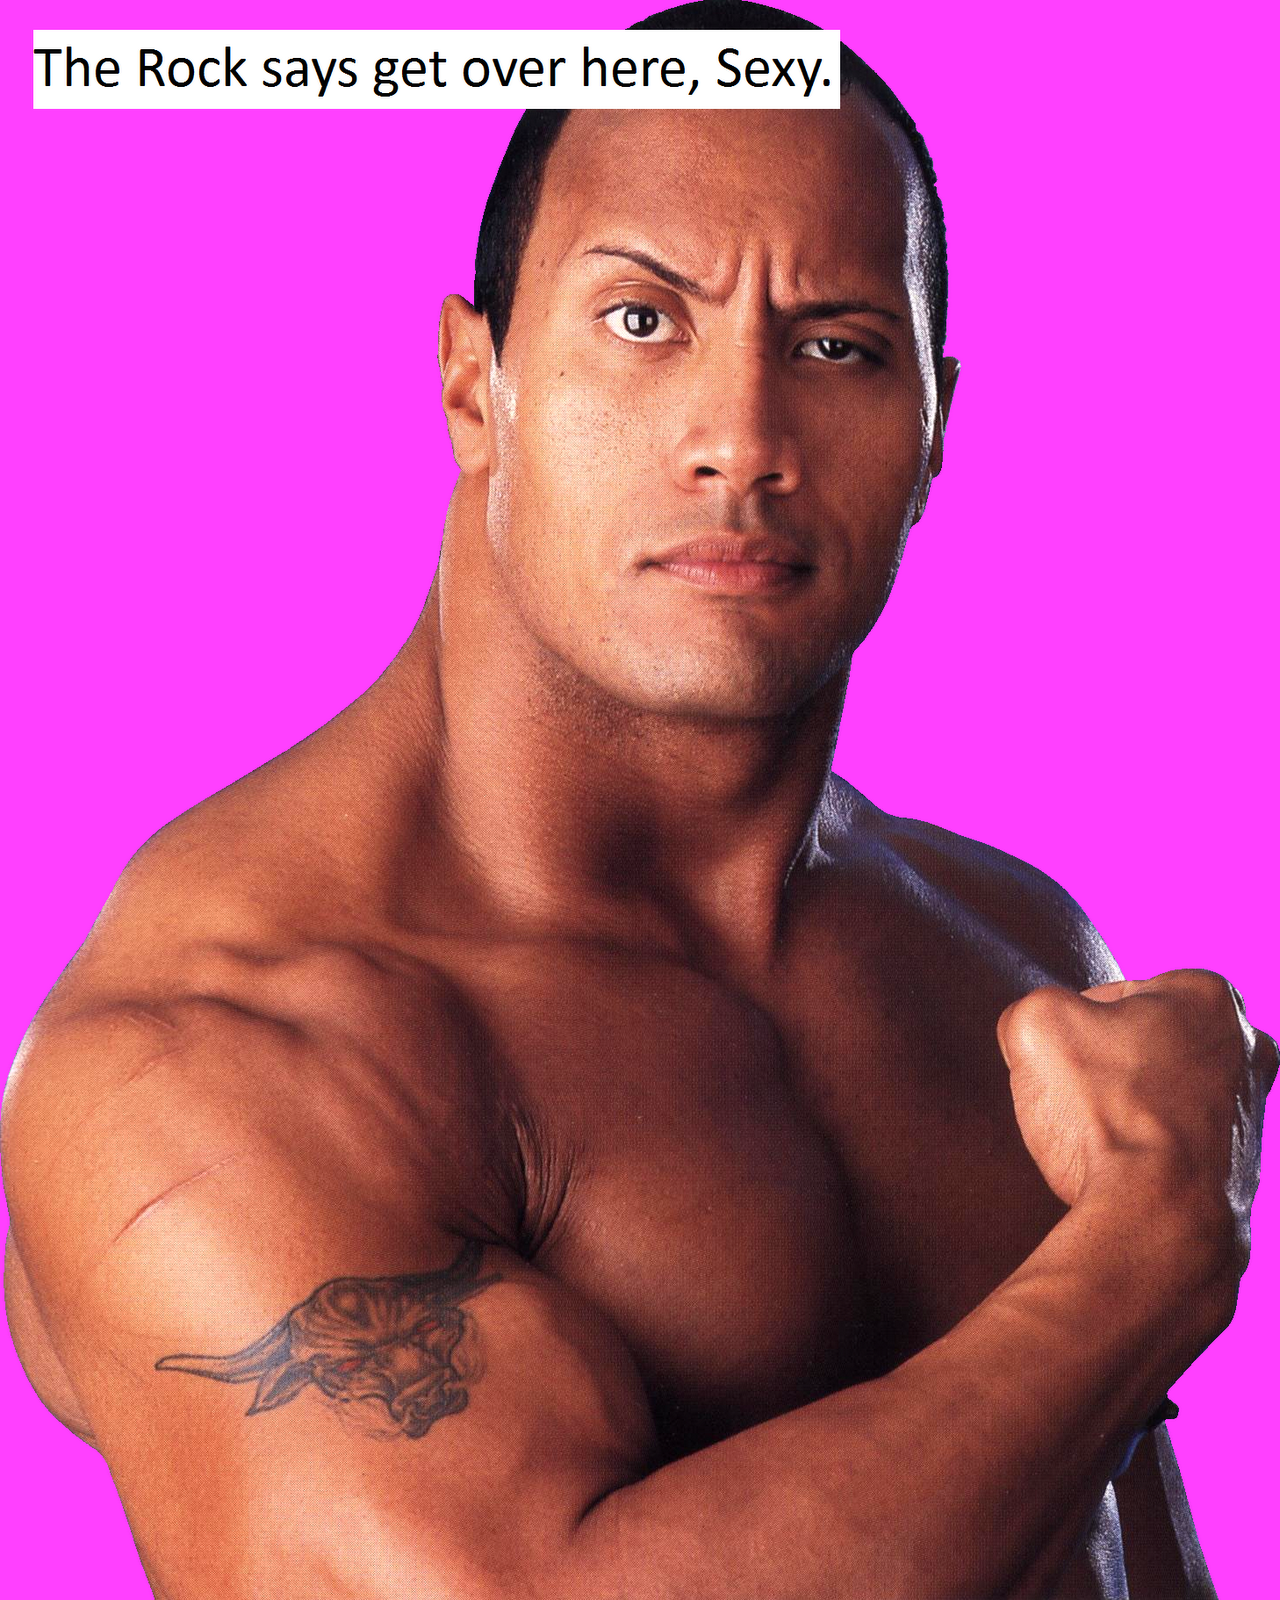 a biography of american wrestling champion dwayne johnson Wayde douglas bowles (august 24, 1944) is a retired canadian professional wrestler best known by his ring name rocky johnson quite popular in his own right in the 1970s and 1980s, he is also known for being the father of actor and former wrestler dwayne &quotthe rock&quot johnson.